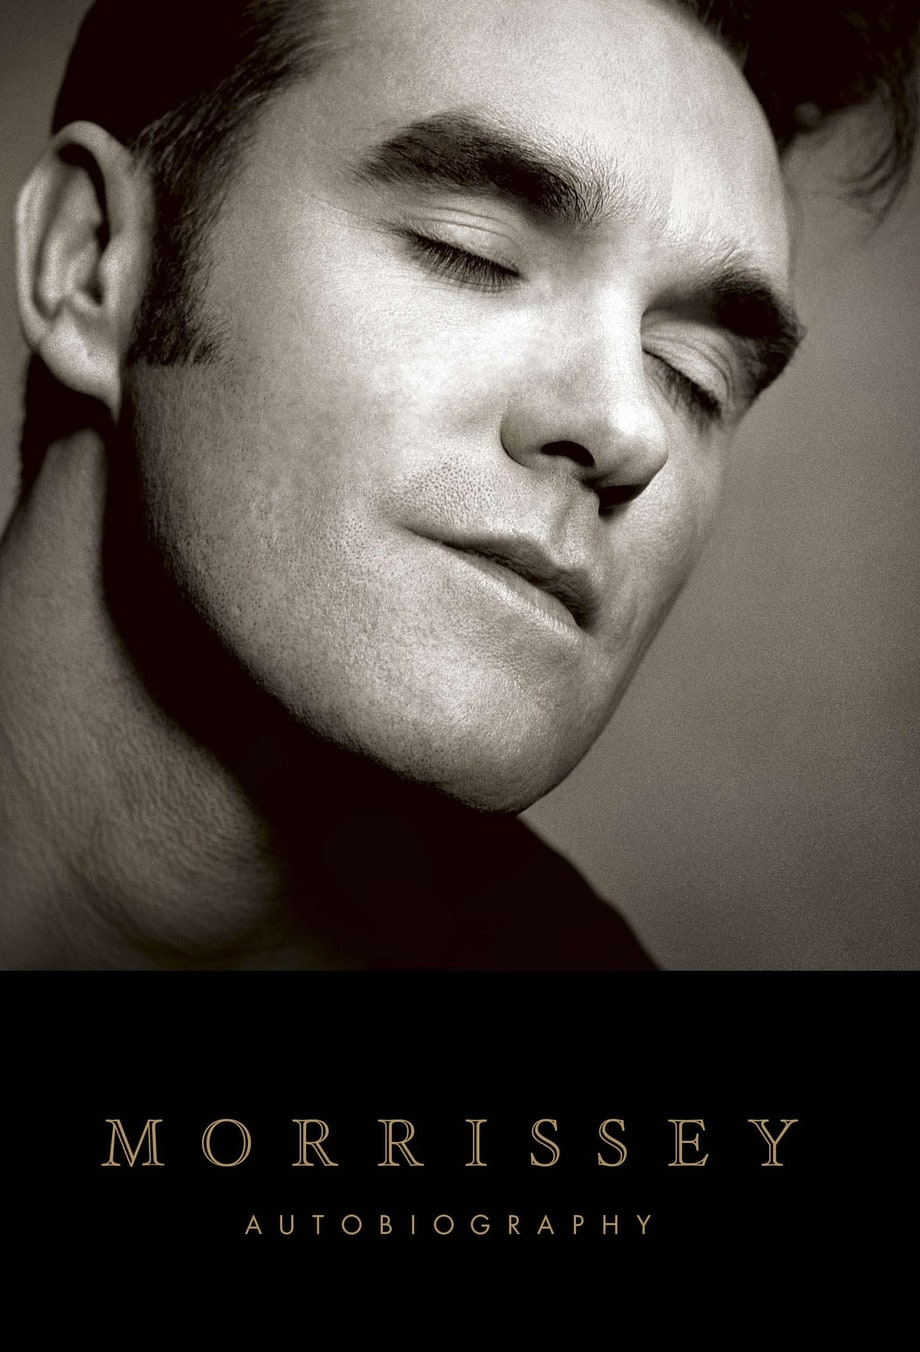 15 Revealing Quotes From Morrissey's Autobiography